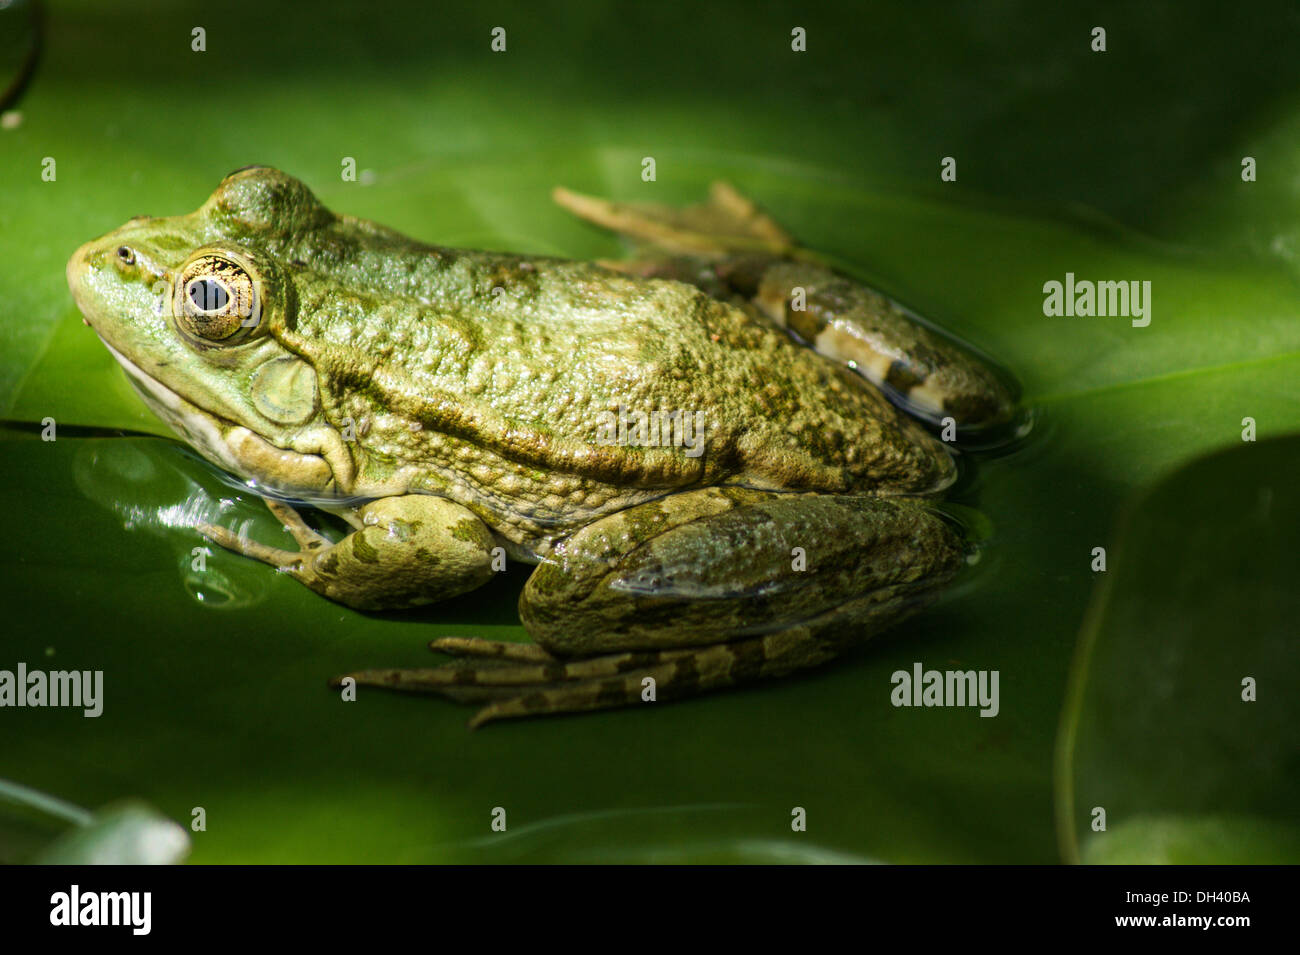 close up of green frog on lily pad stock photo royalty free image